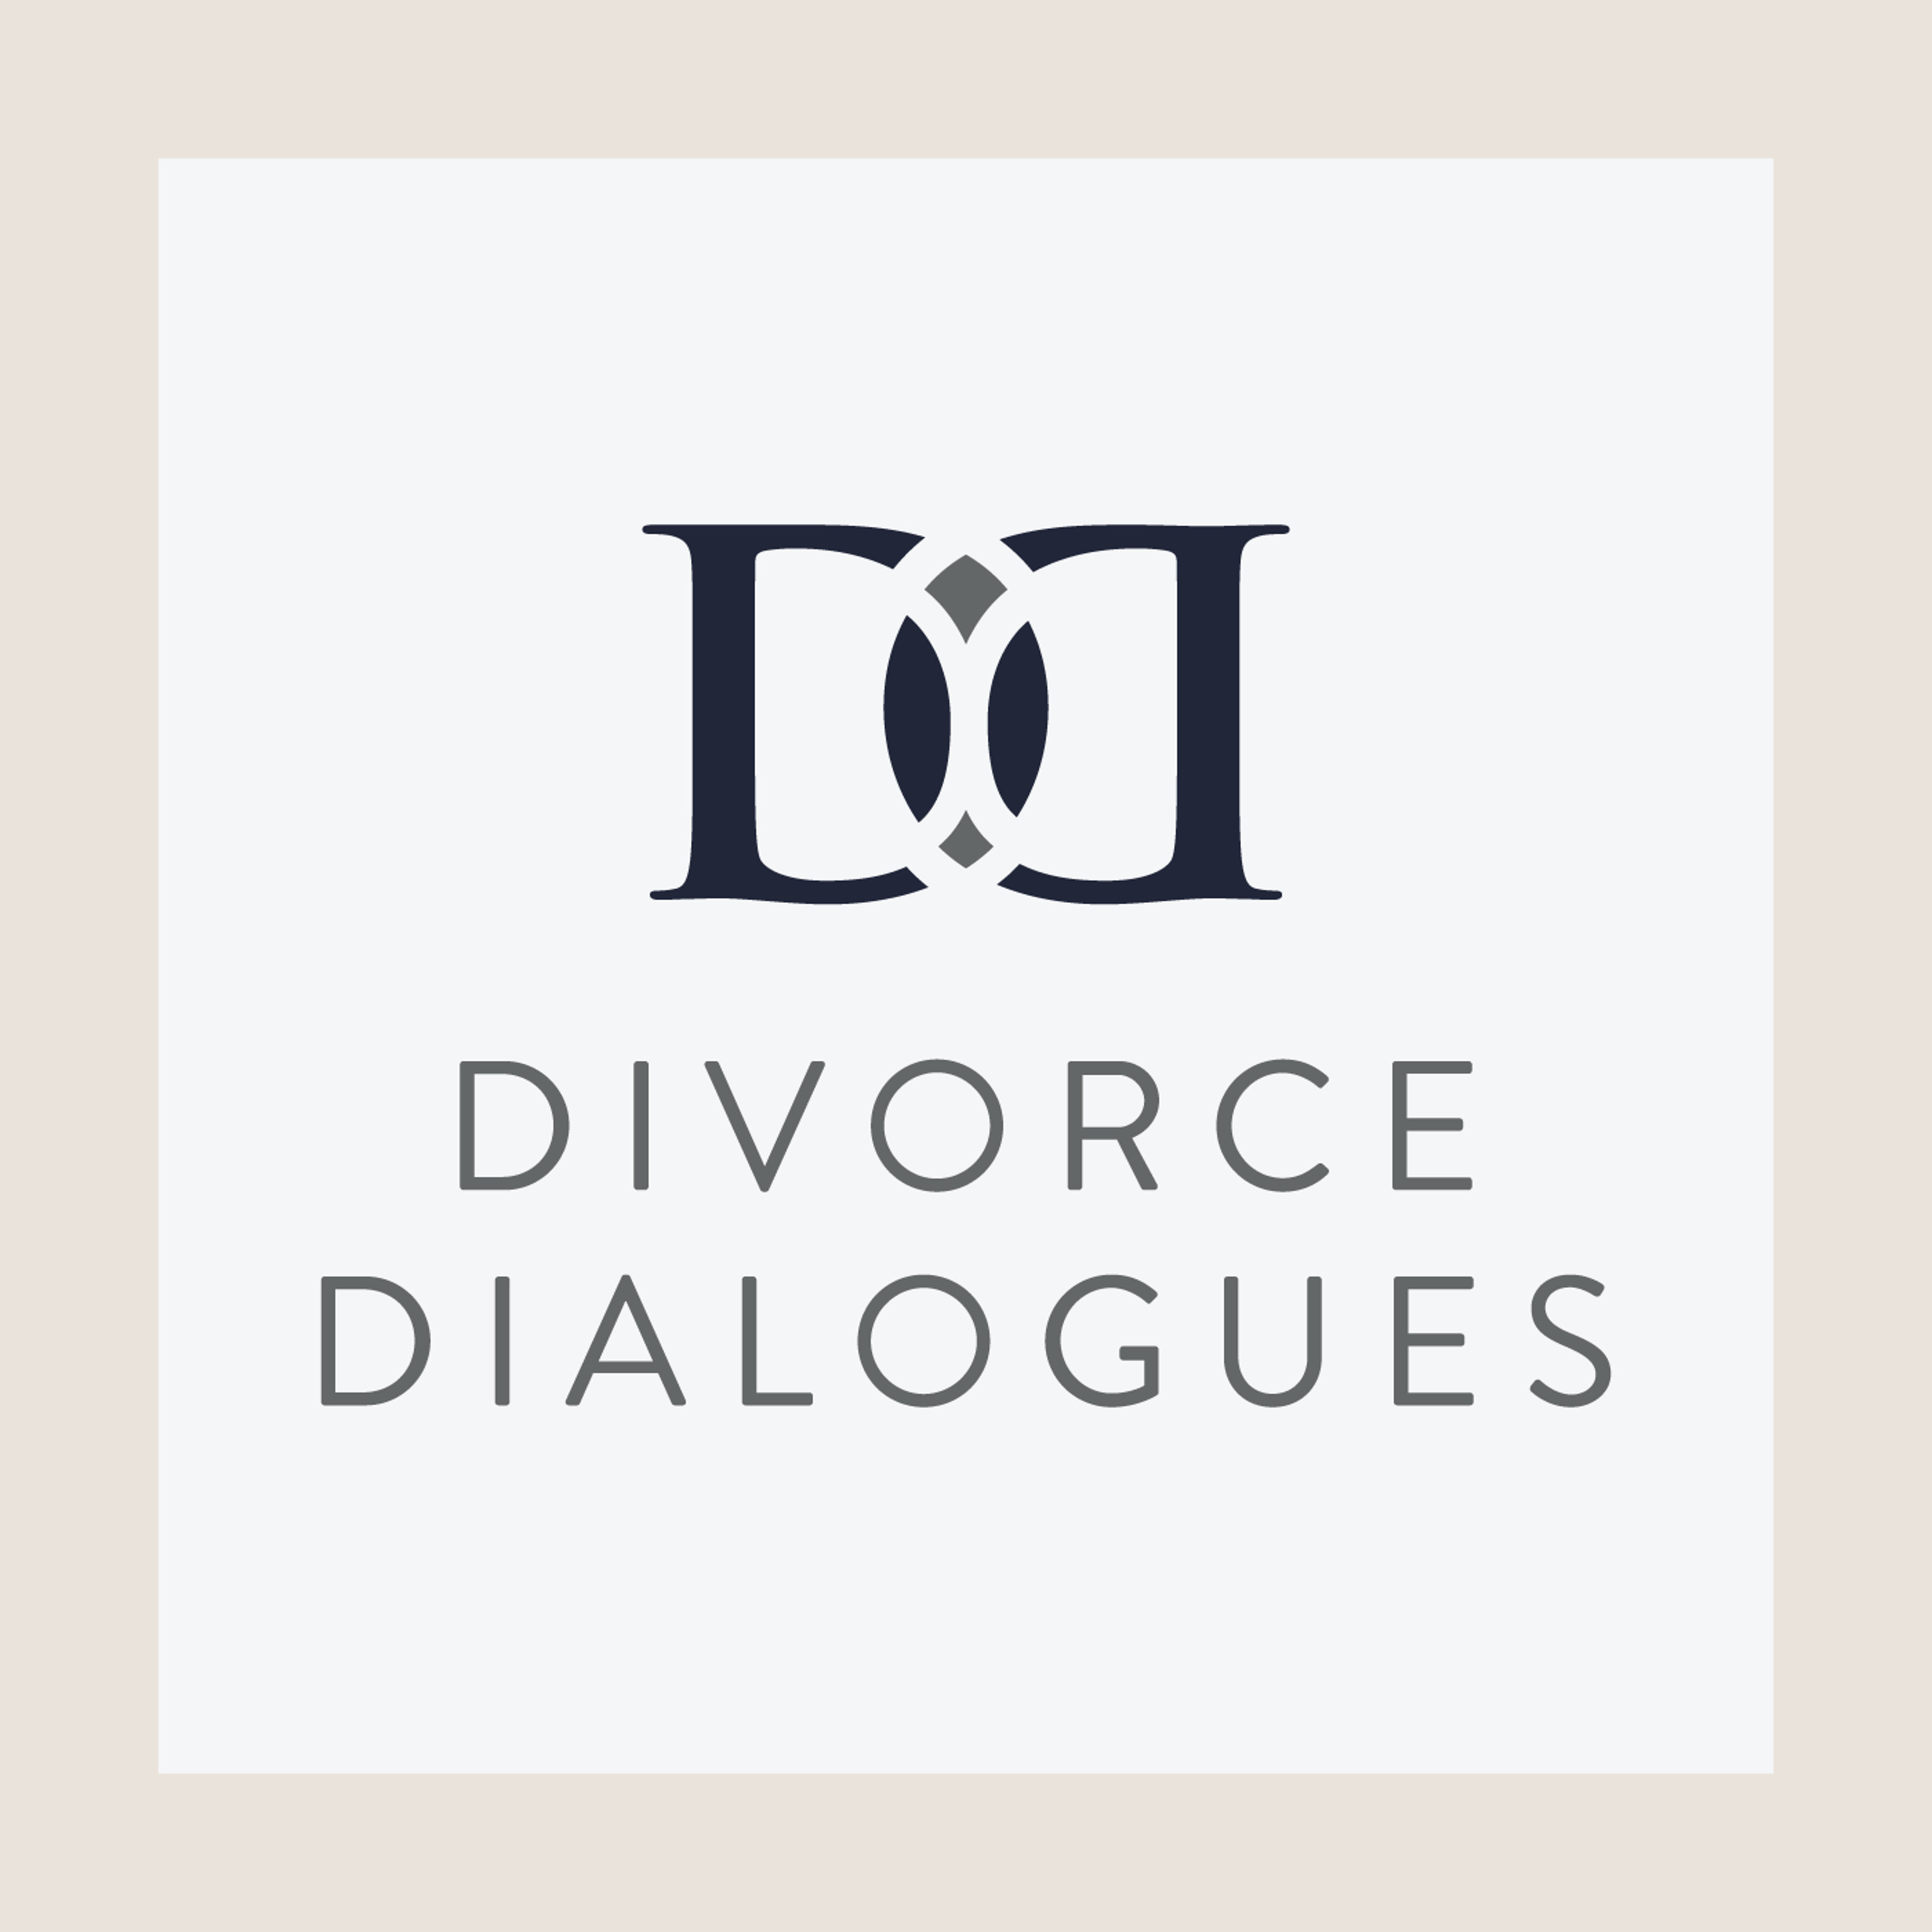 Divorce Dialogues - Protecting Your Kids with Intelligent Divorce with Dr. Mark Banschick